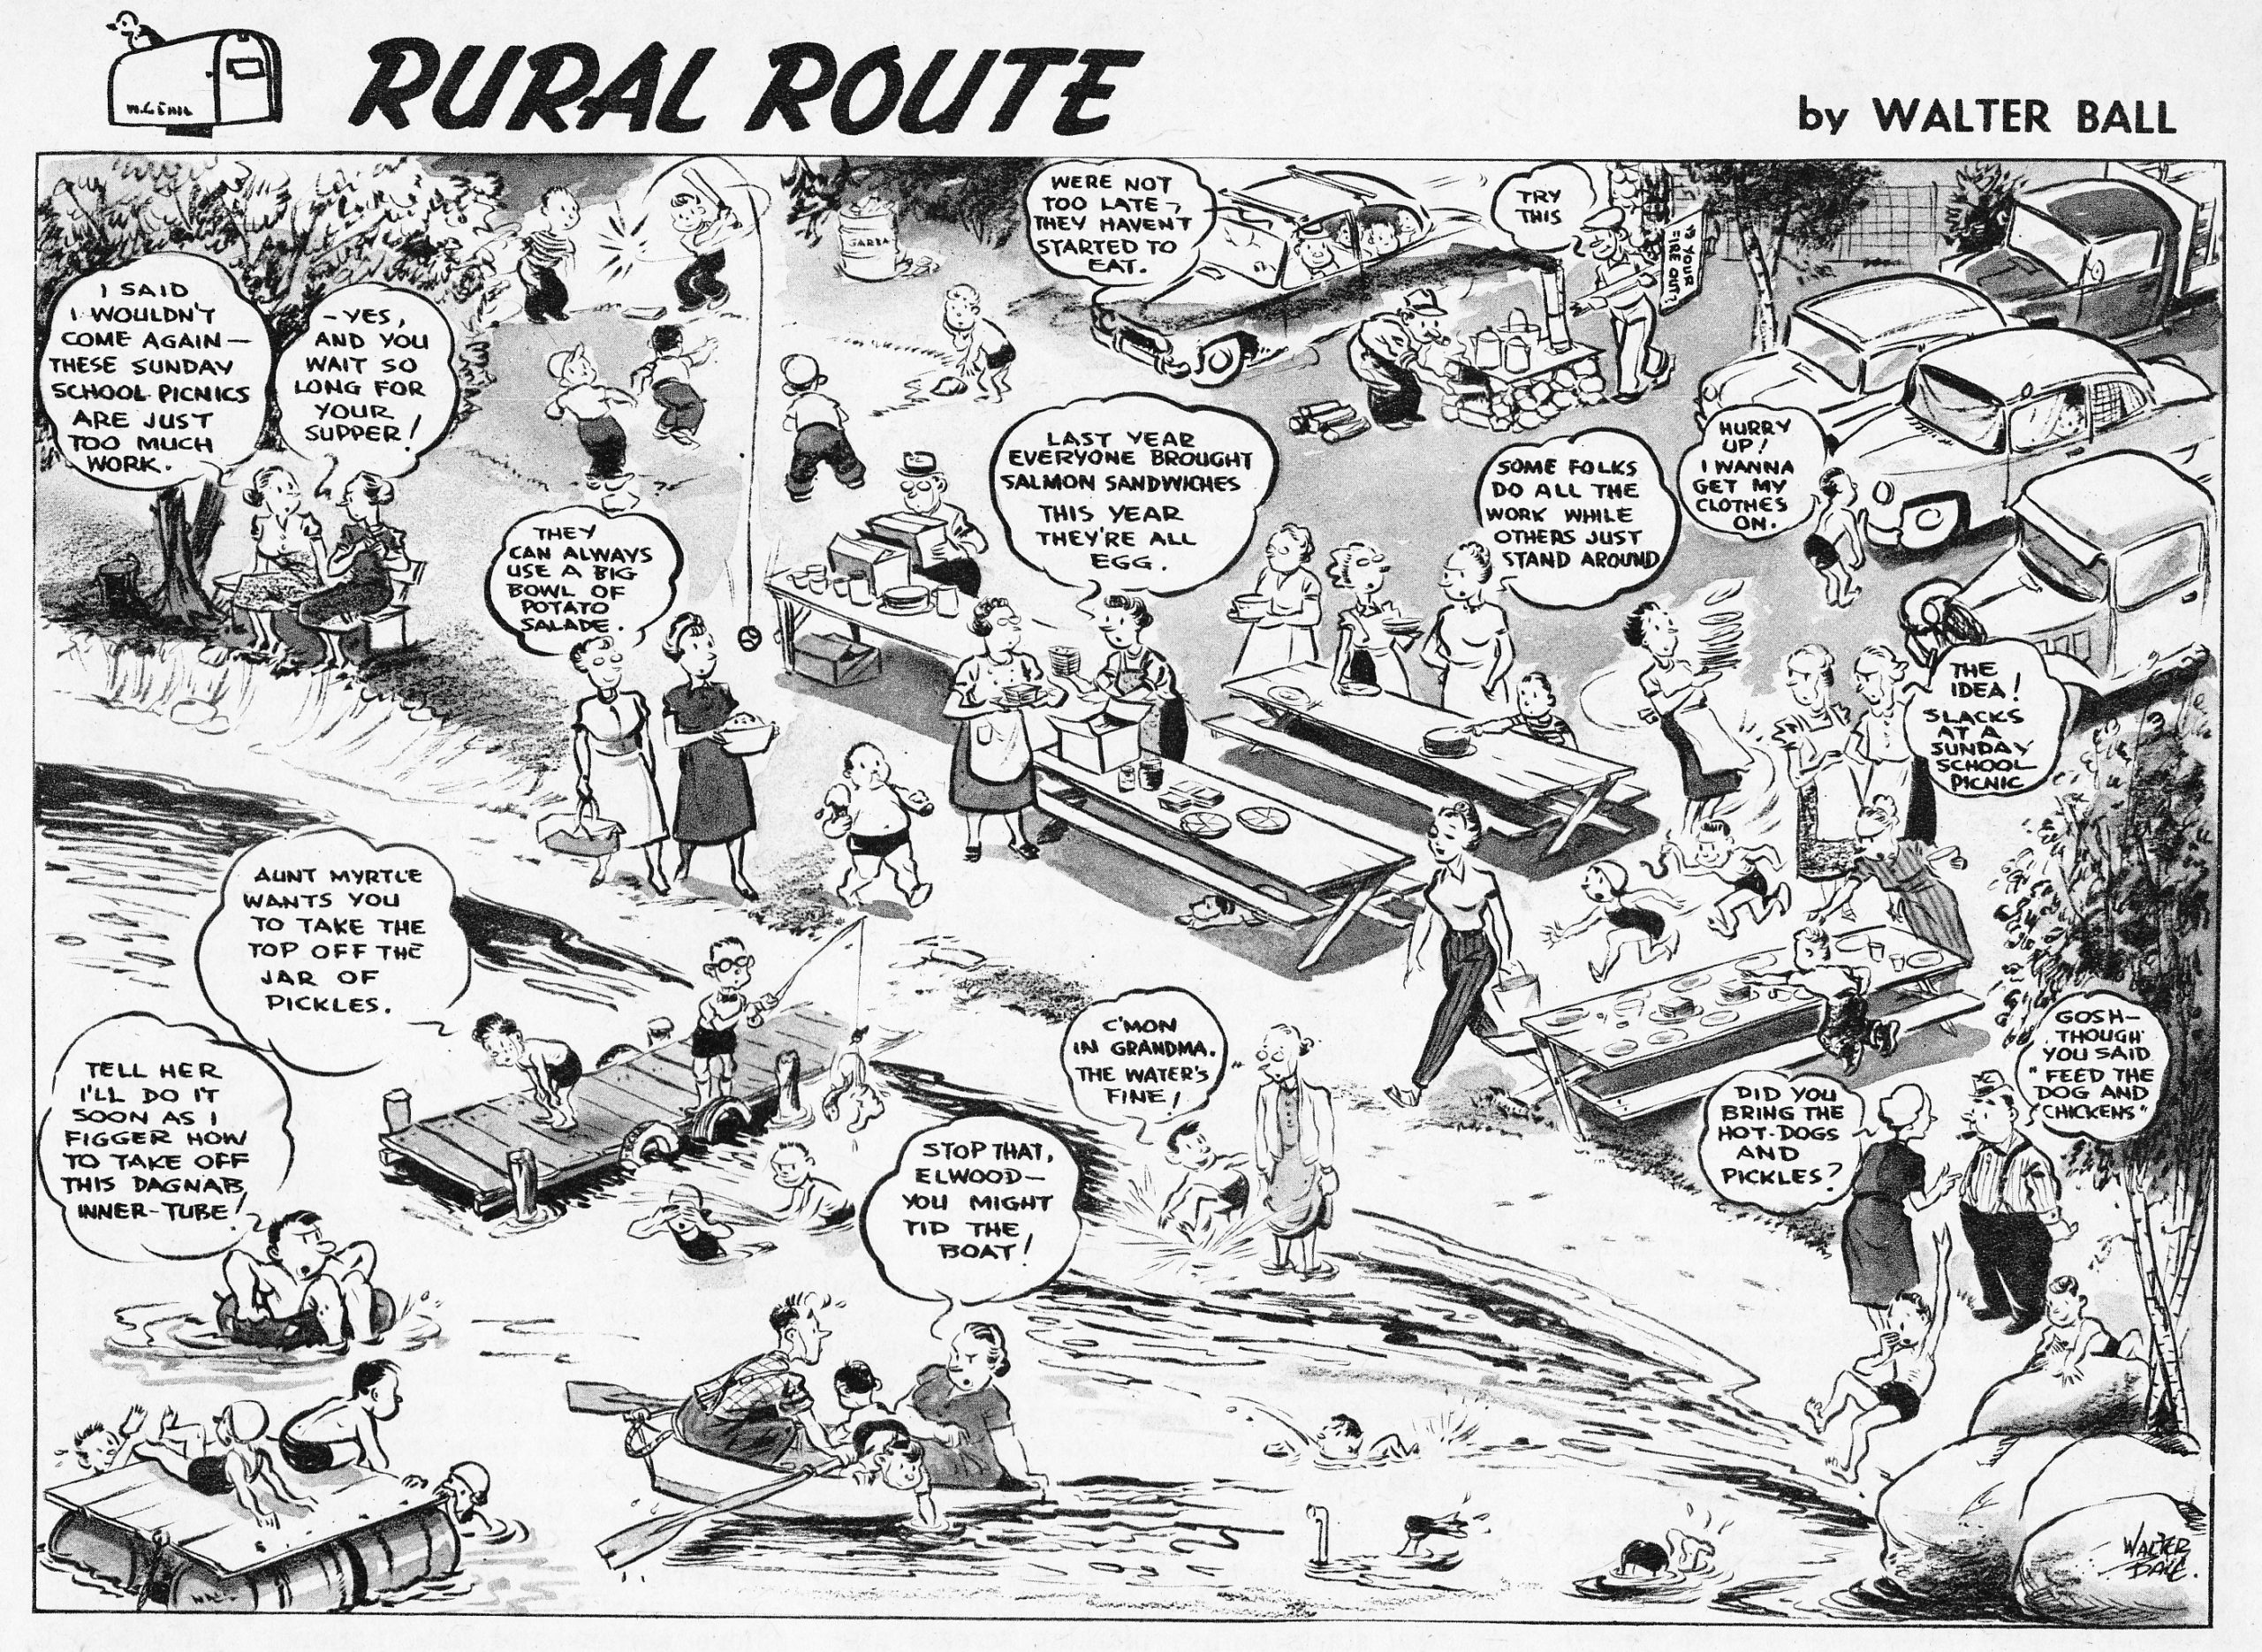 C:\Users\Robert\Documents\CARTOONING ILLUSTRATION ANIMATION\IMAGE CARTOON\IMAGE CARTOON R\RURAL ROUTE, Star Weekly Magazine,2 July 1960, 46.jpg